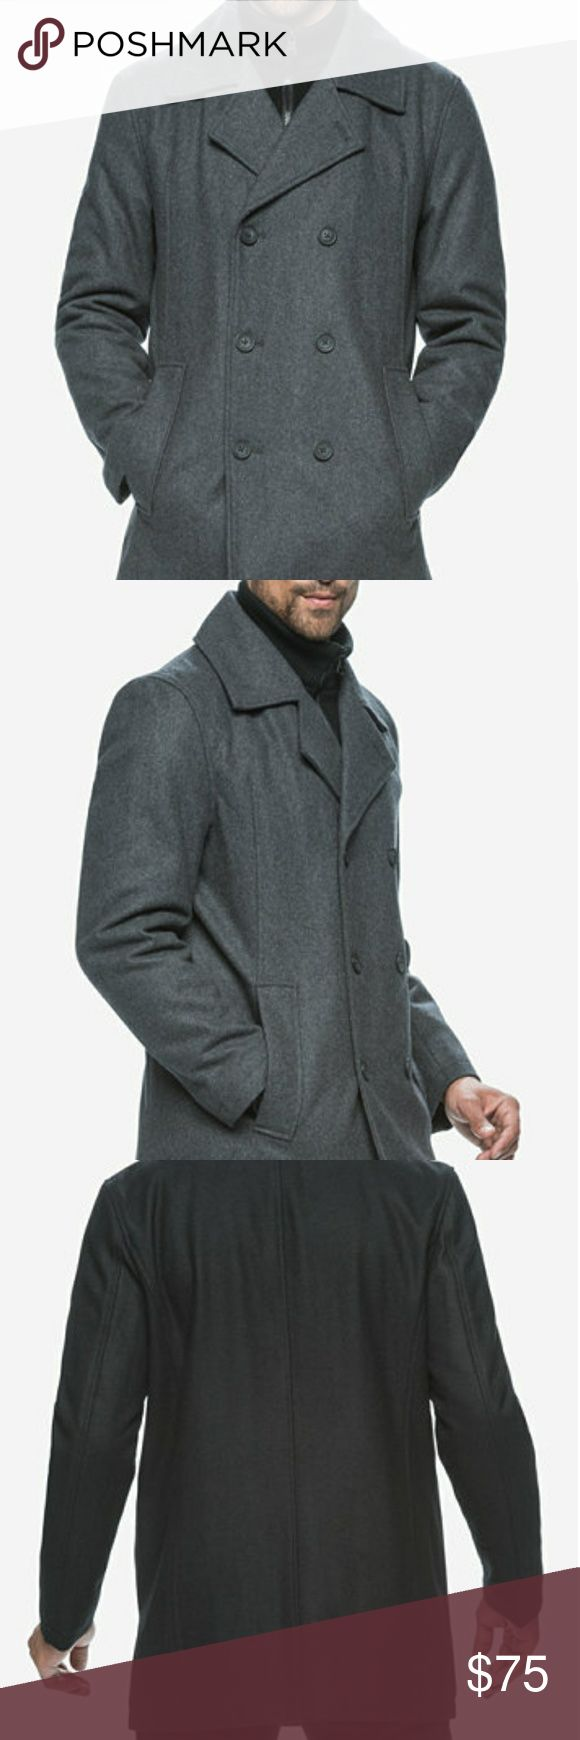 Marc New York Layered Peacoat Marc New York Super Sharp Coat from Macys!! Marc New York Jackets & Coats Pea Coats